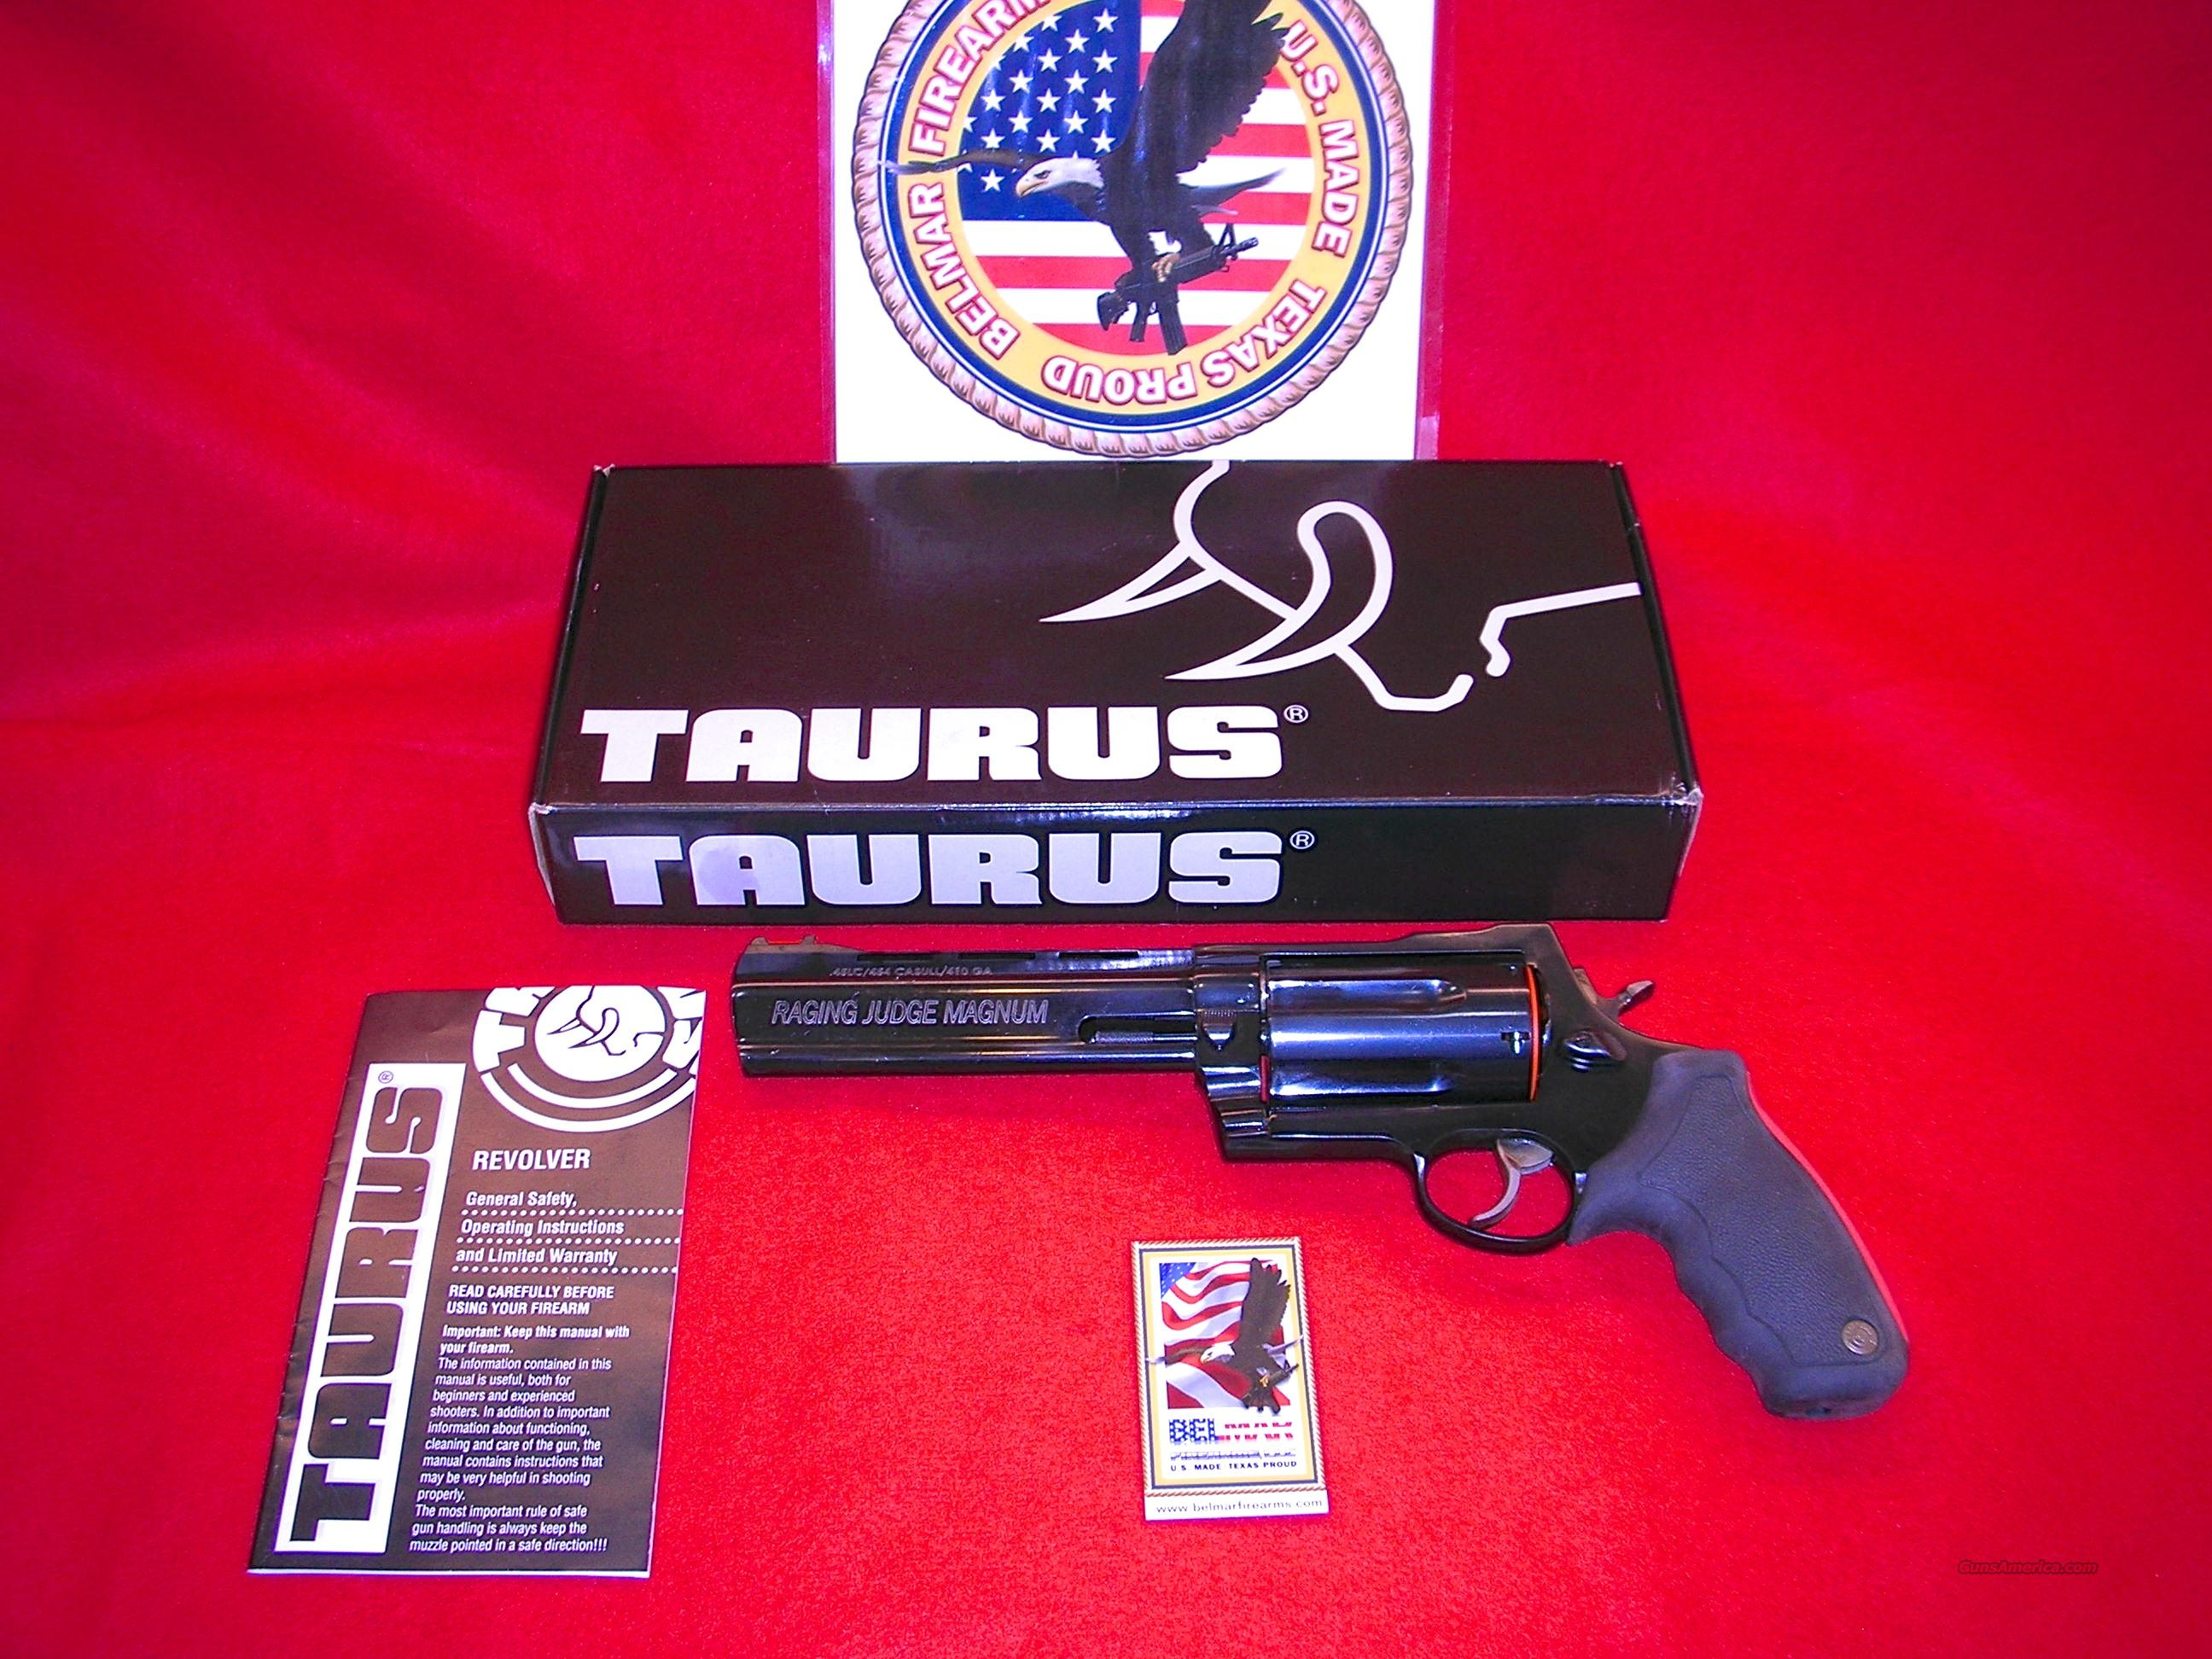 Taurus Raging Judge Magnum 6rd 45 Colt 454 C For Sale 1911 Moreover Beretta 92 Parts Diagram Desert Eagle 4747475